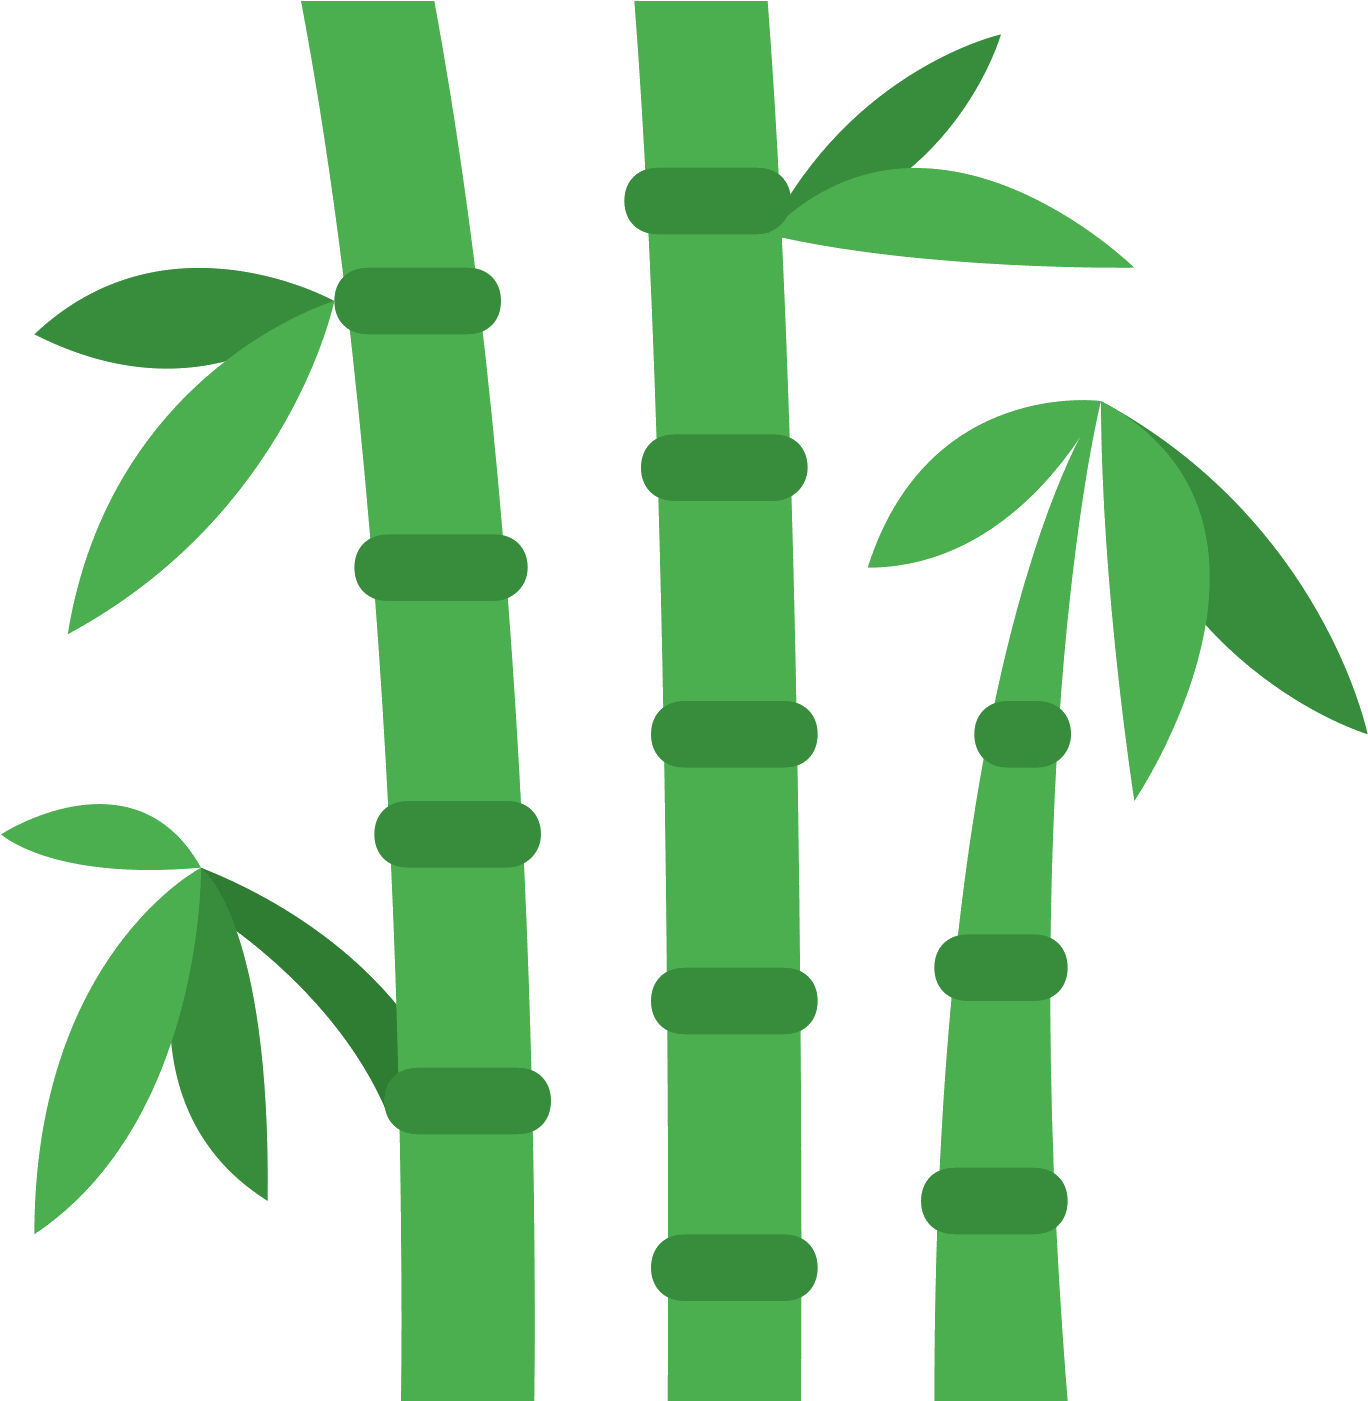 Bamboo leaf png. Download clipart clip art